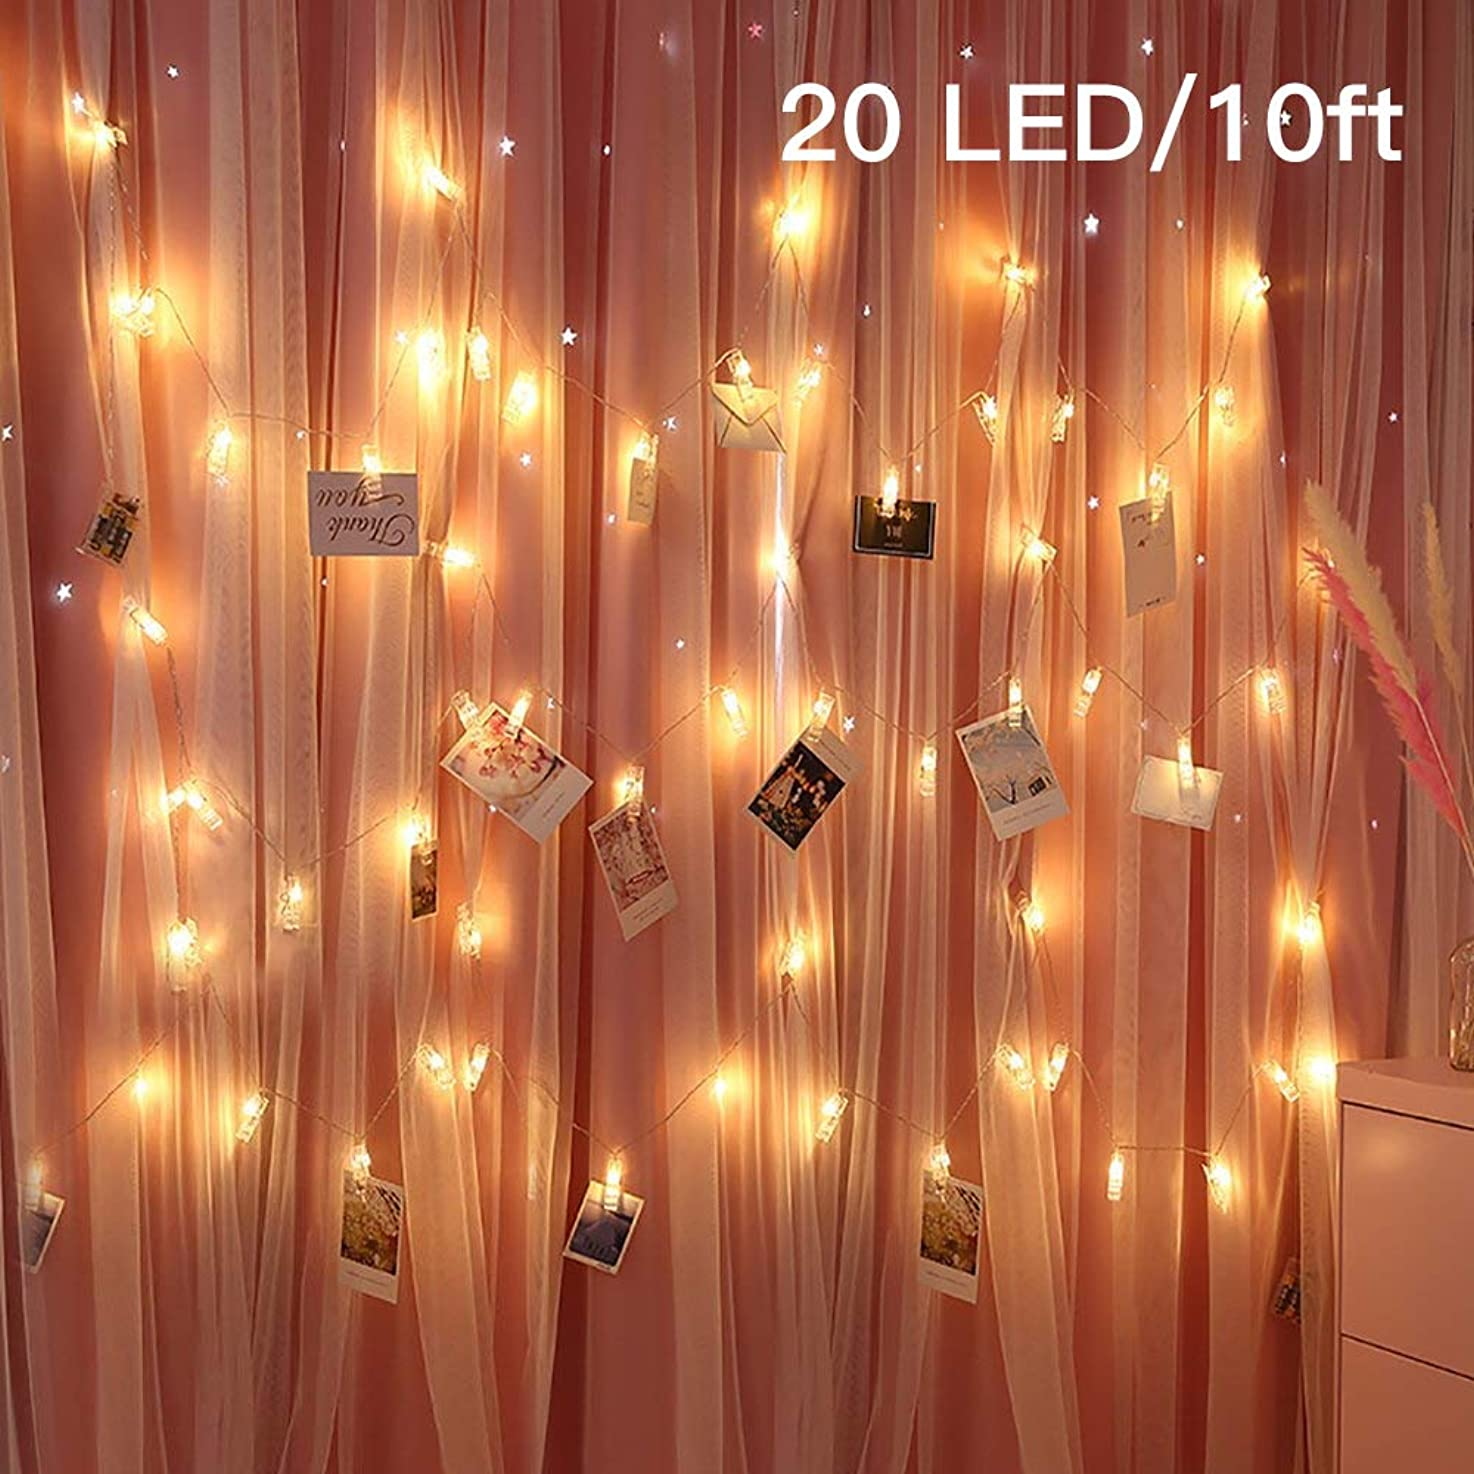 soyond Photo Clip String Lights, Fairy 20 LED Lights Window Curtain Wall Dorm Lighting for Hanging Artwork Photos Memos Paintings, Bedroom Dorm Home Décor, Battery Operated (20 Clips)